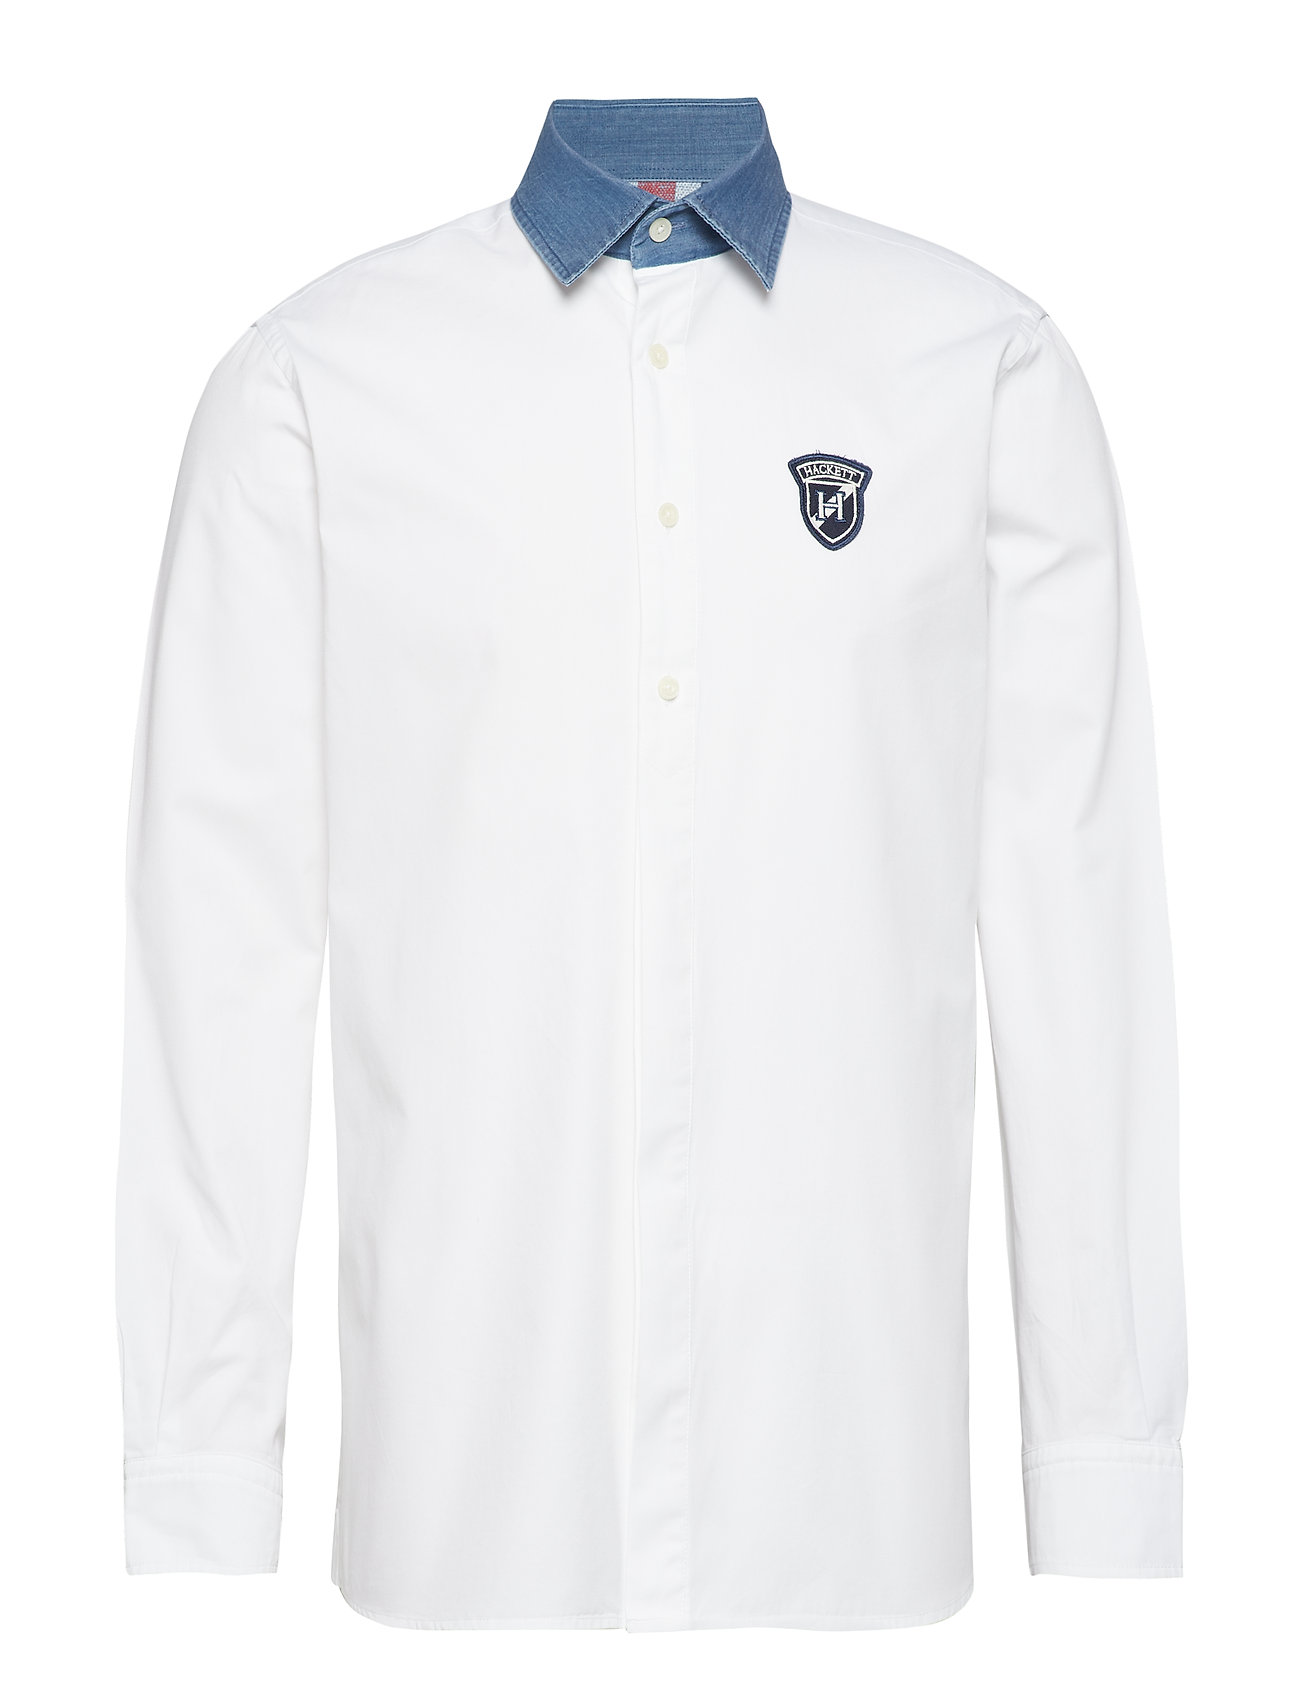 Hackett RUGBY DMCOLLAR ARCHIVE - 8AJWHITE/MULTI